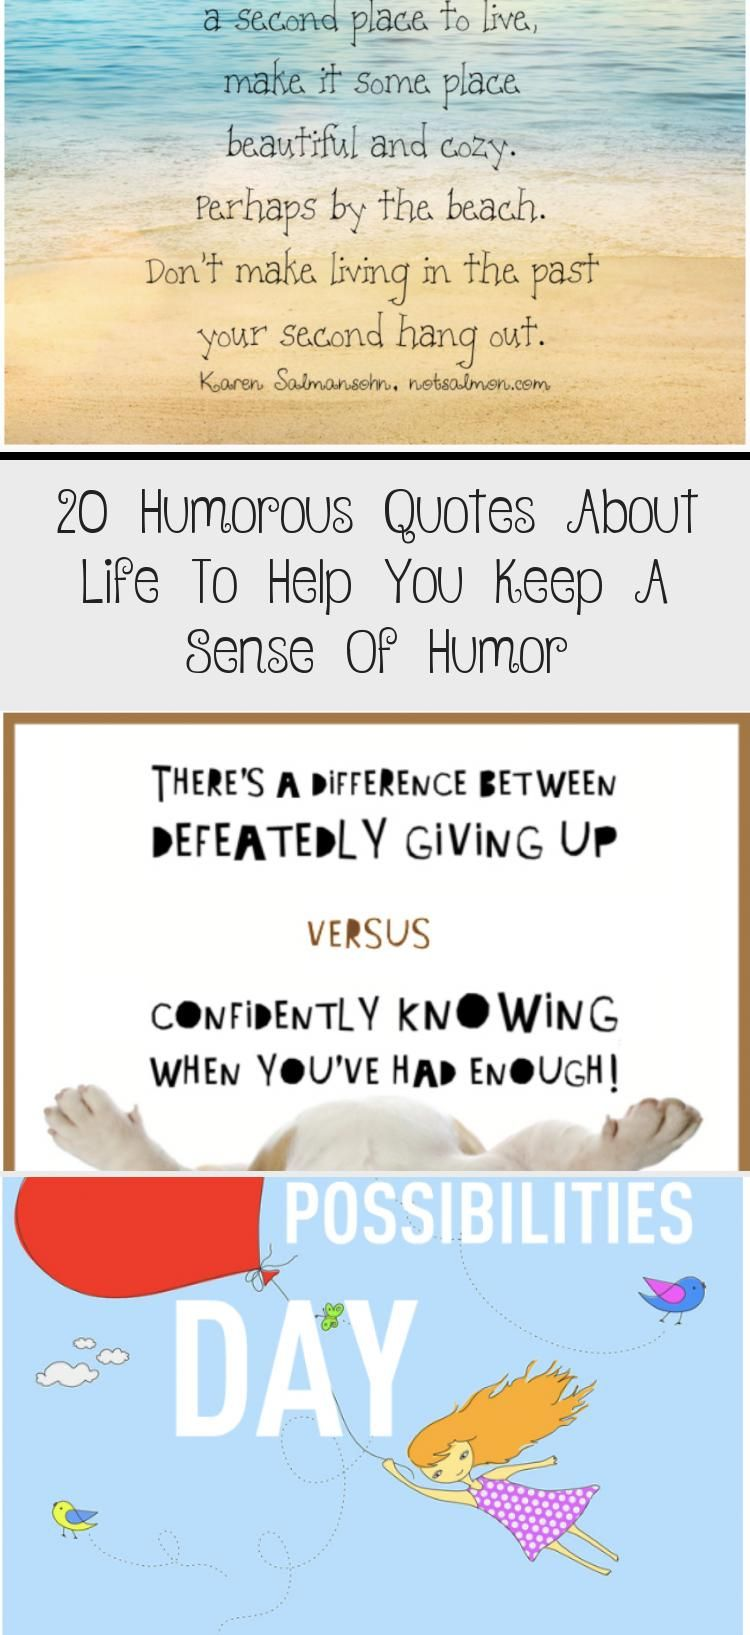 20 Humorous Quotes About Life To Help You Keep A Sense Of Humor Funny Quotes Sarcastic Quotes Funny Life Quotes